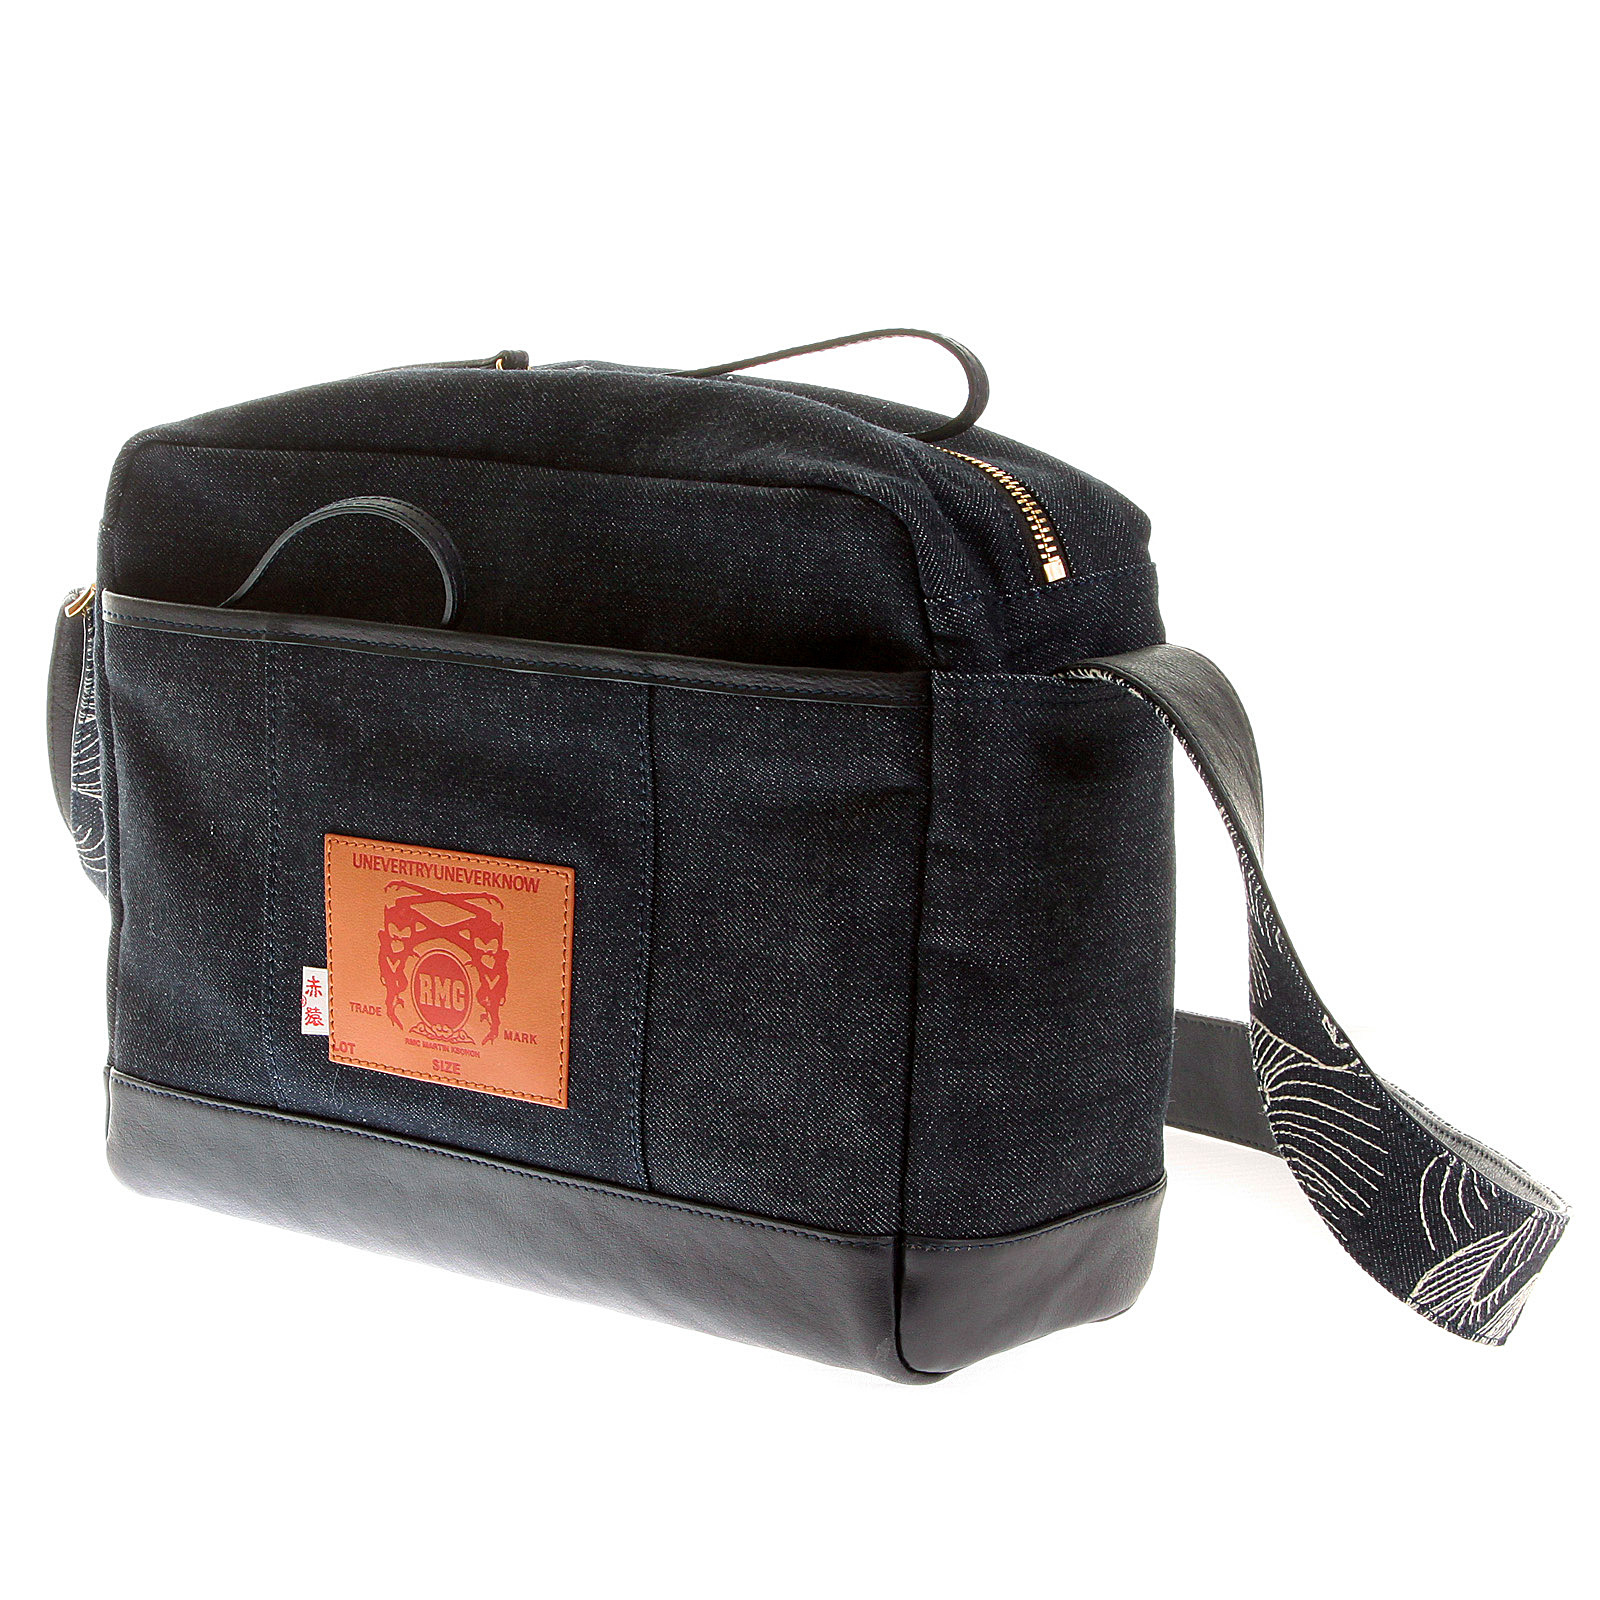 216efce33084 RMC Jeans Fully Lined Unisex Denim with Leather Despatch Bag REDM5527